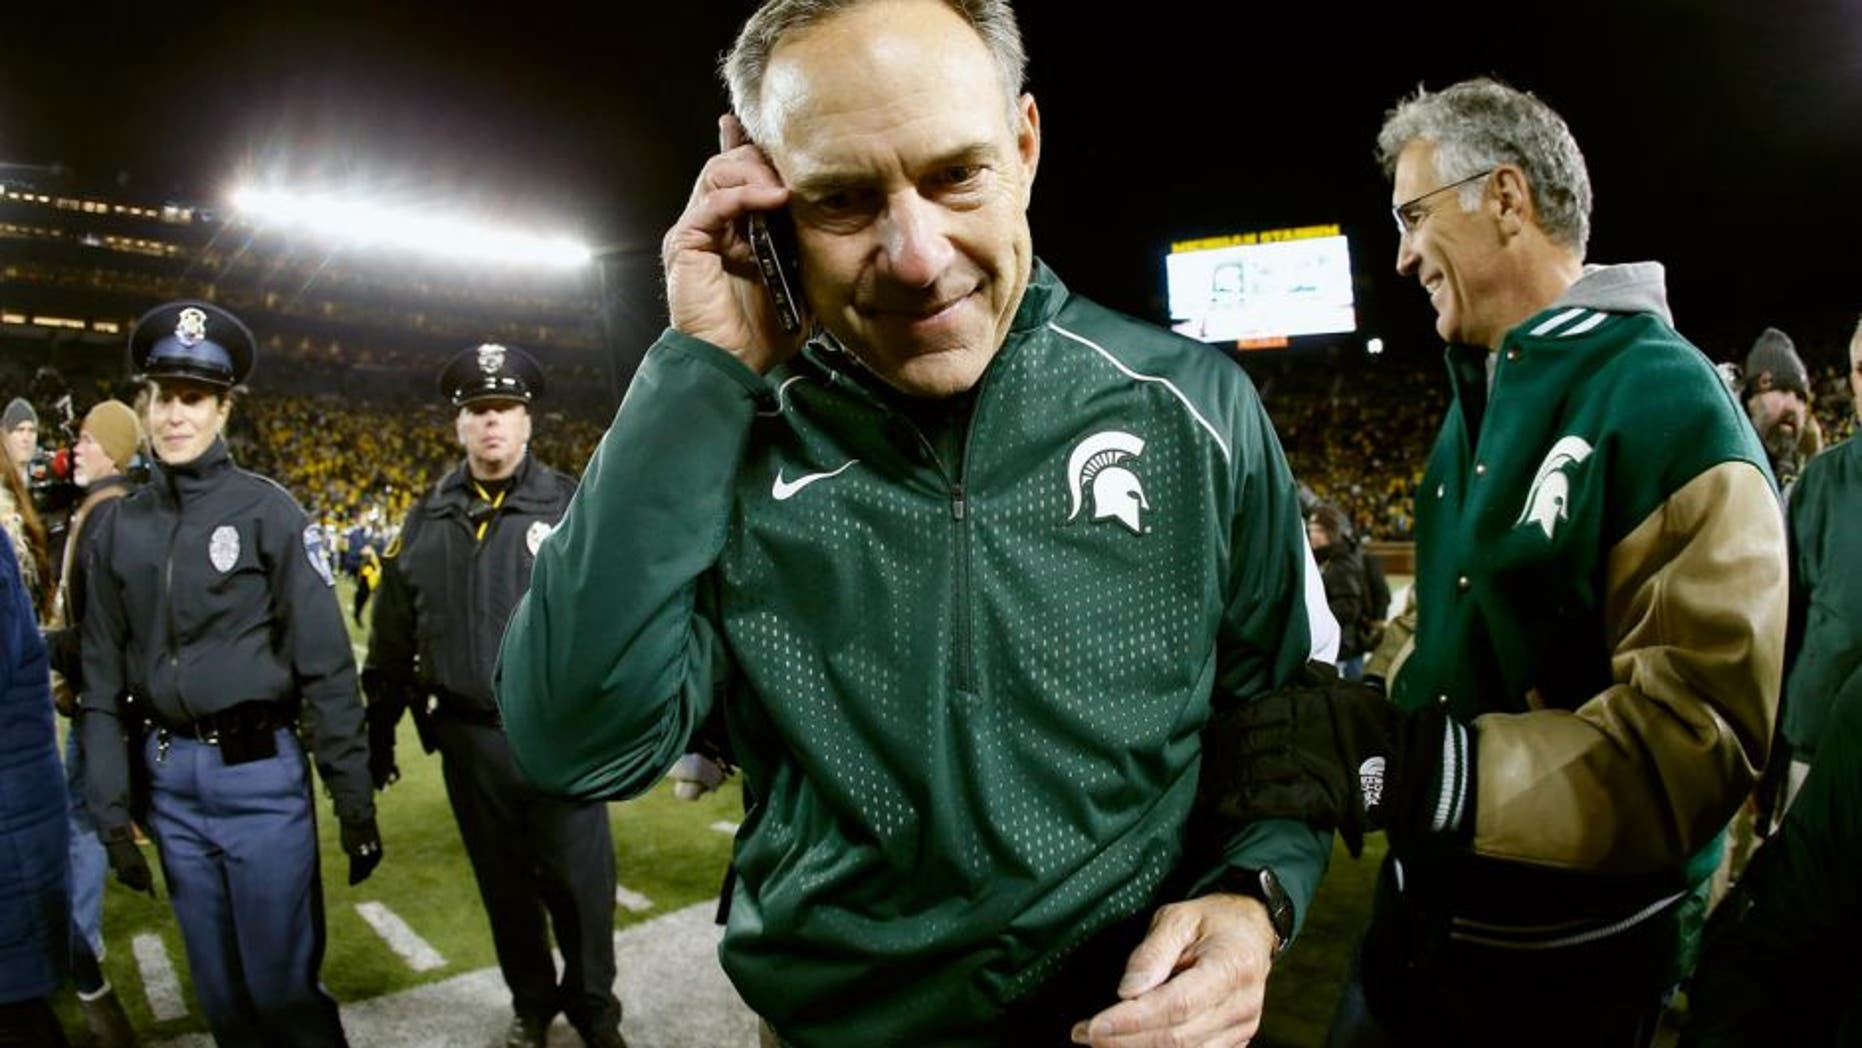 ANN ARBOR, MI - OCTOBER 17: Head coach Mark Dantonio of the Michigan State Spartans walks off the field after defeating the Michigan Wolverines 27-23 in the college football game at Michigan Stadium on October 17, 2015 in Ann Arbor, Michigan. (Photo by Christian Petersen/Getty Images)